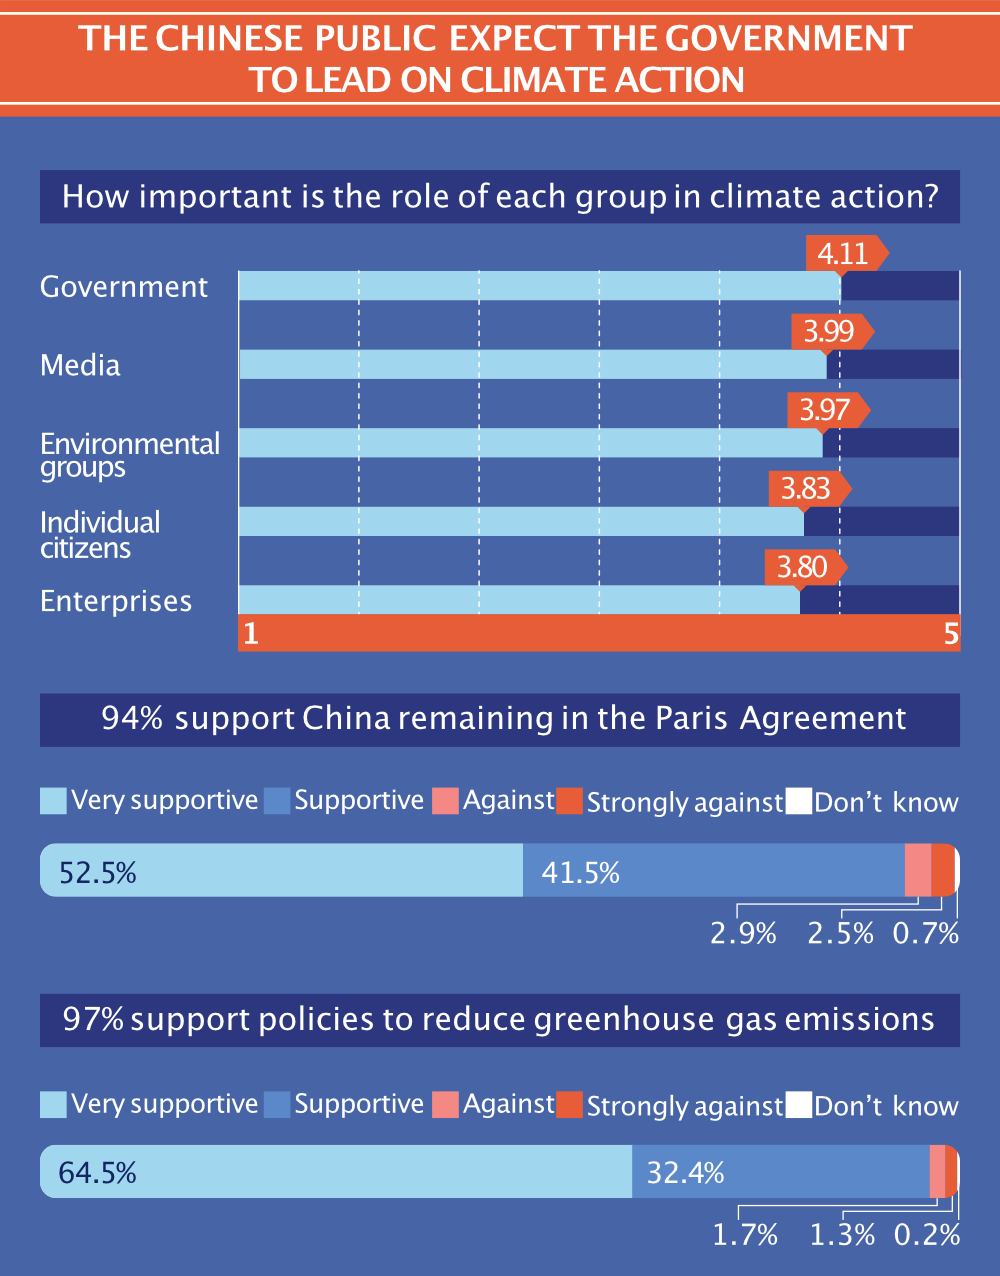 The Chinese public expect the government to lead on climate change